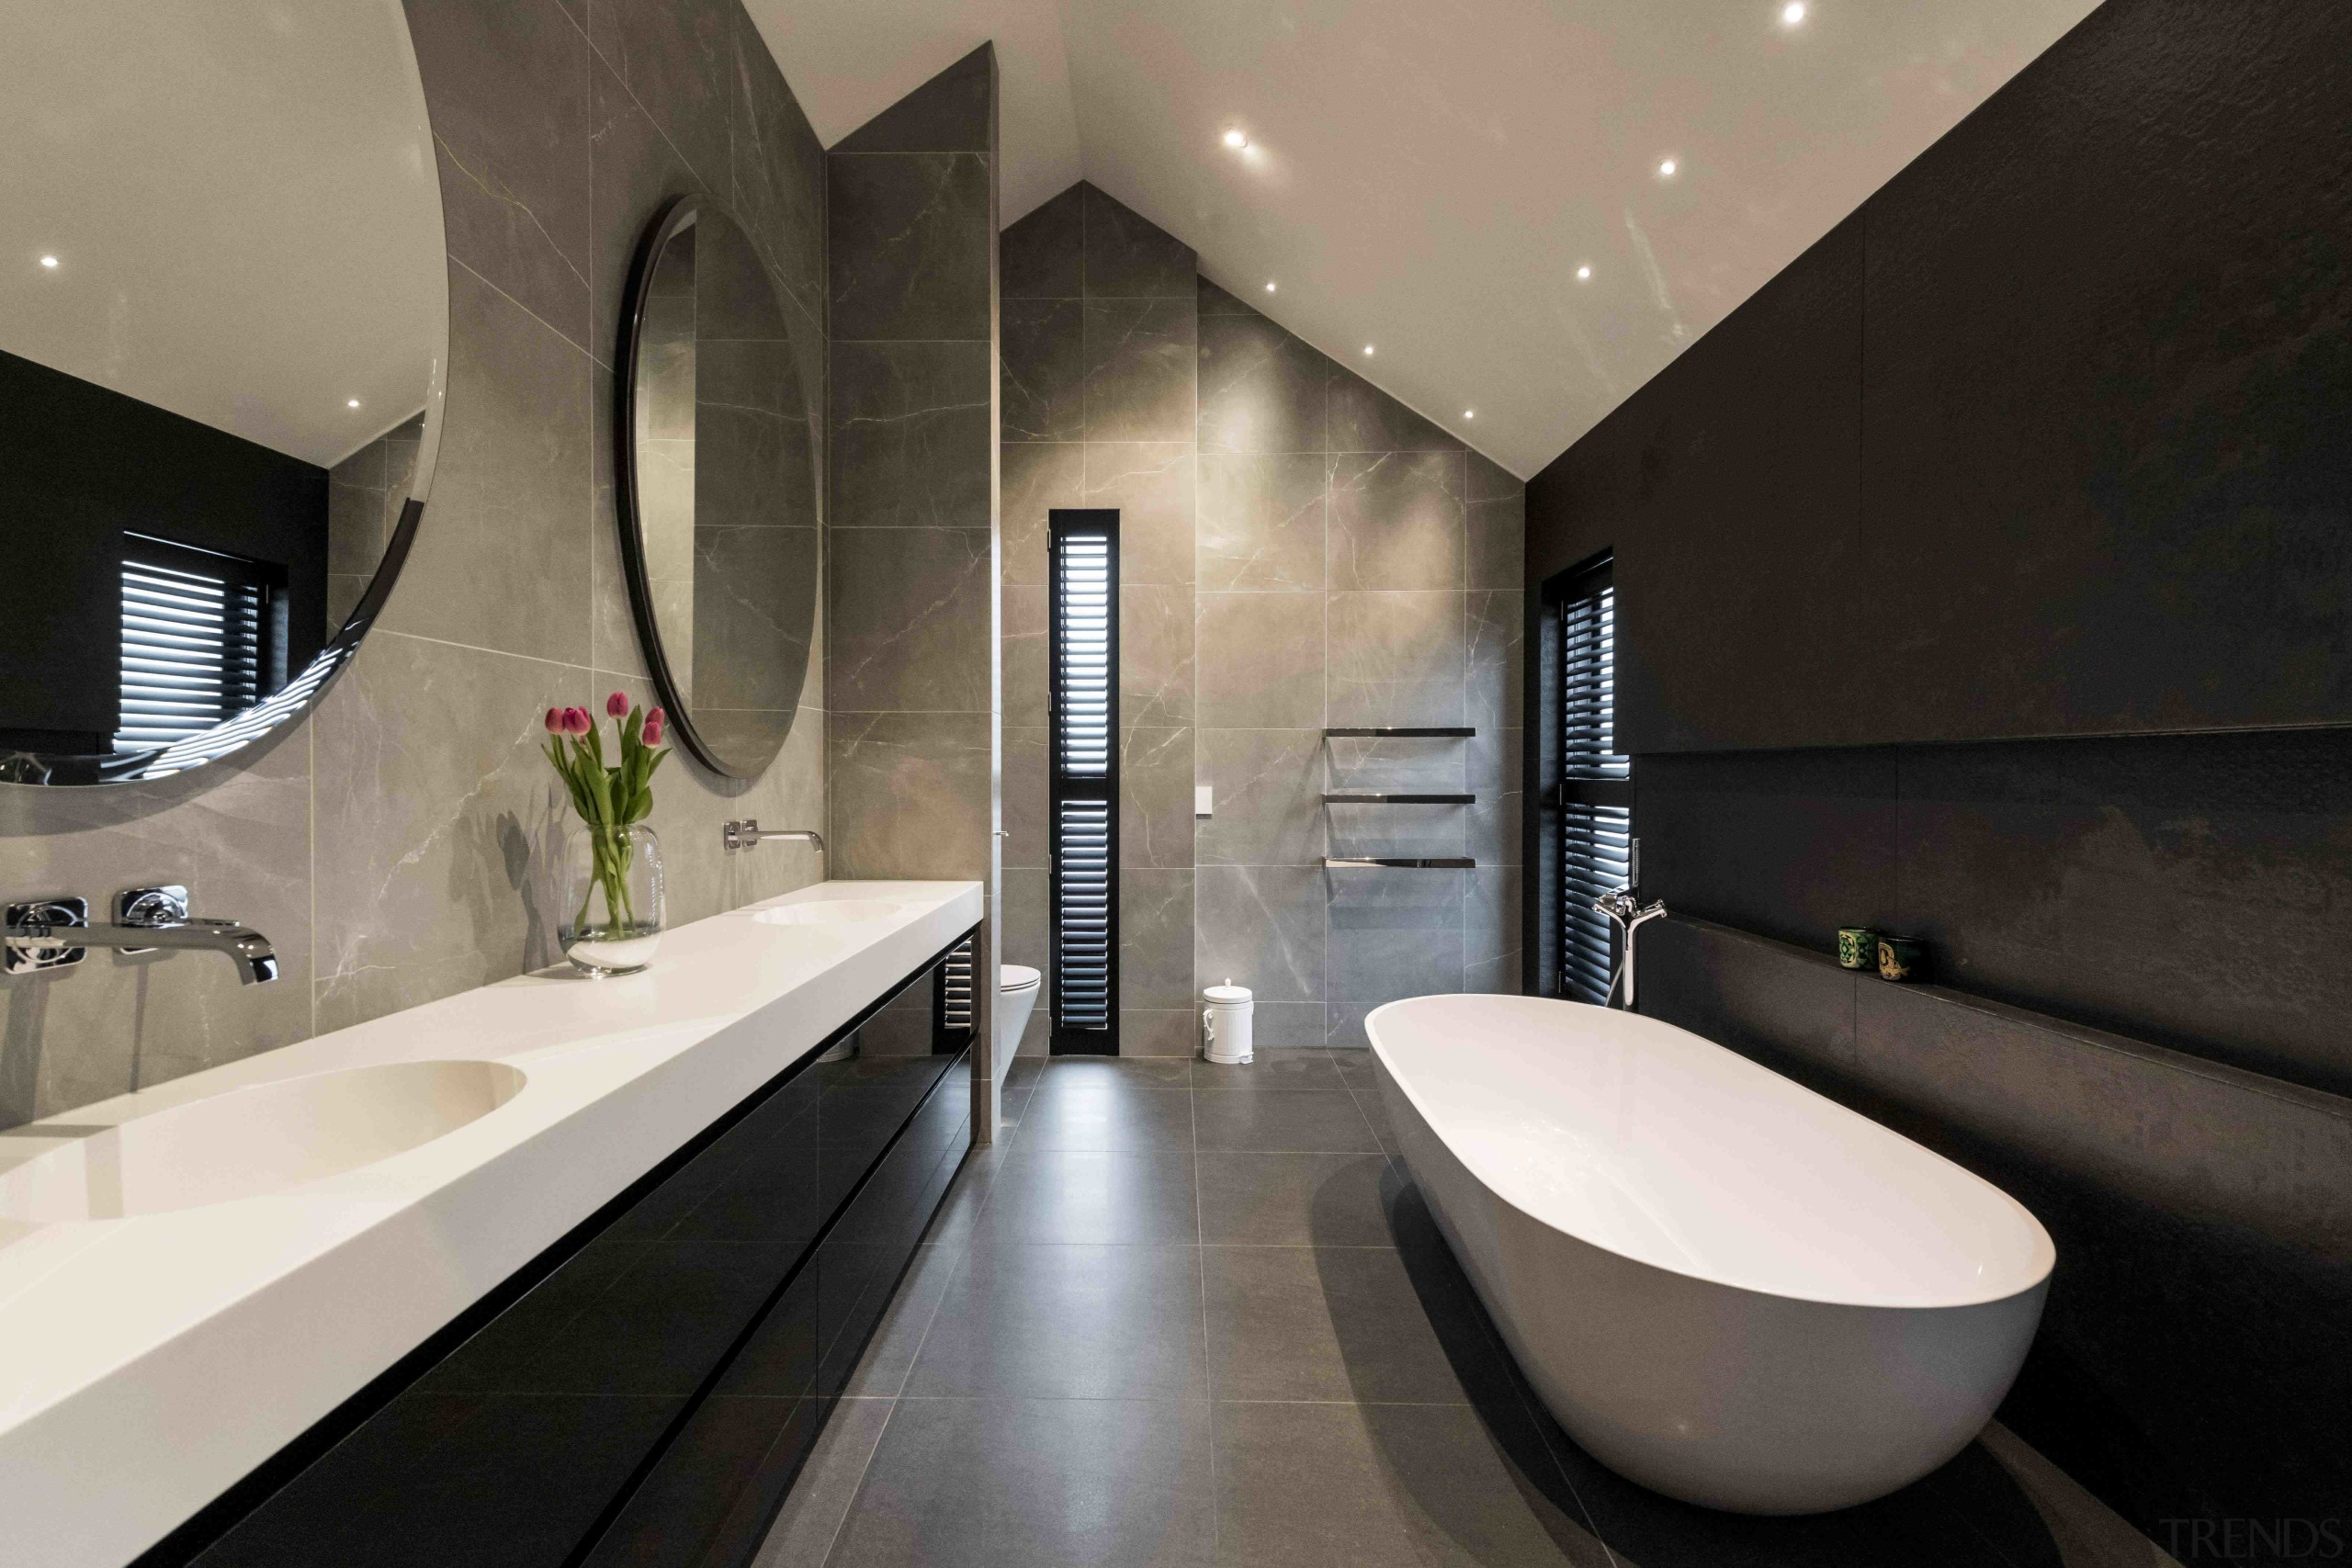 Dramatically high-pitched ceiling and comparatively low ceilings all architecture, bathroom, bathtub, building, ceiling, floor, home, house, interior design, plumbing fixture, property, real estate, room, tap, tile, gray, black